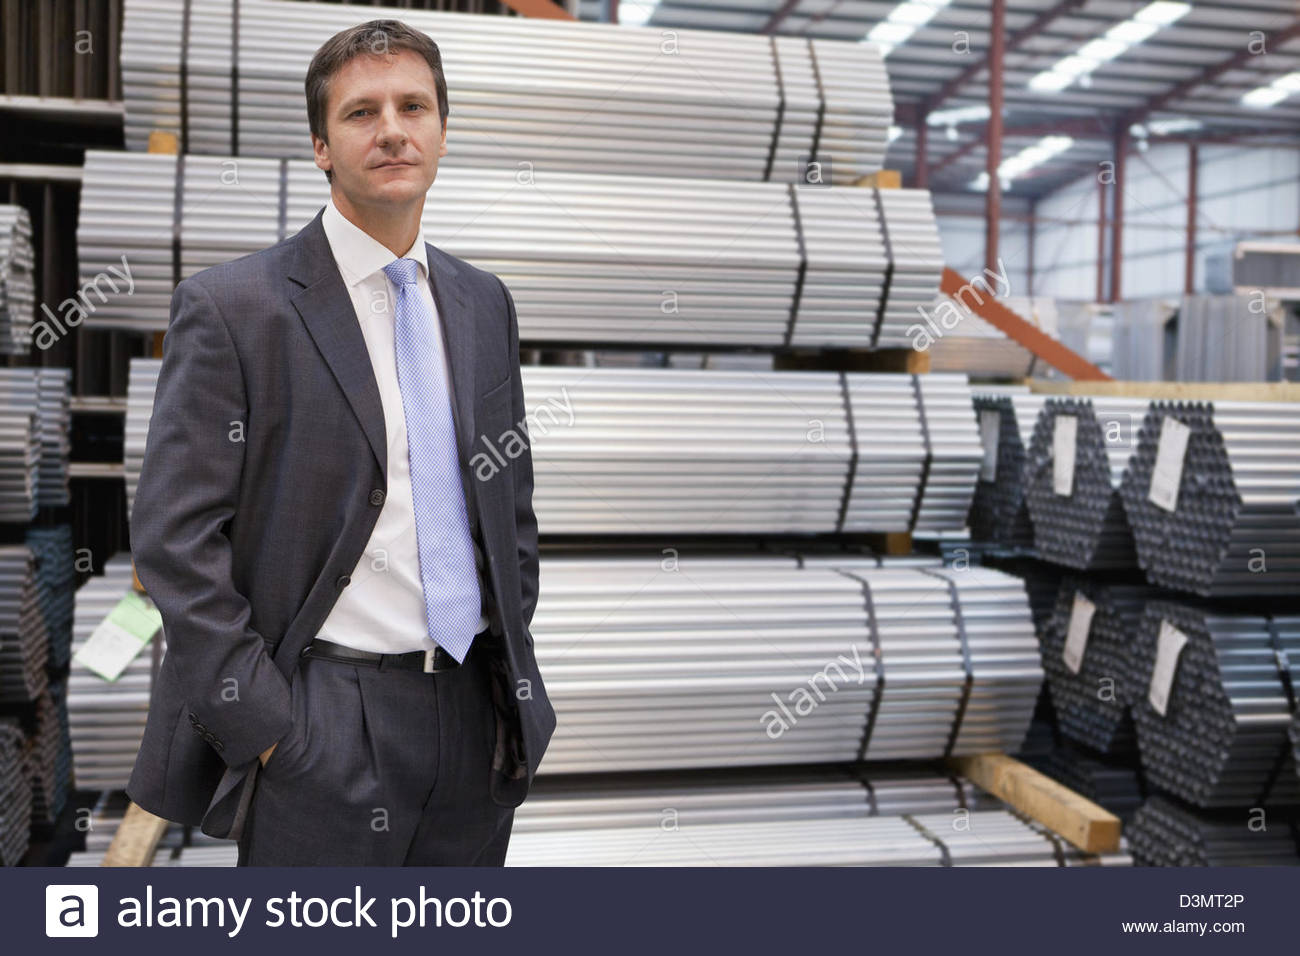 Portrait of confident businessman near stacked steel bundles in warehouse - Stock Image